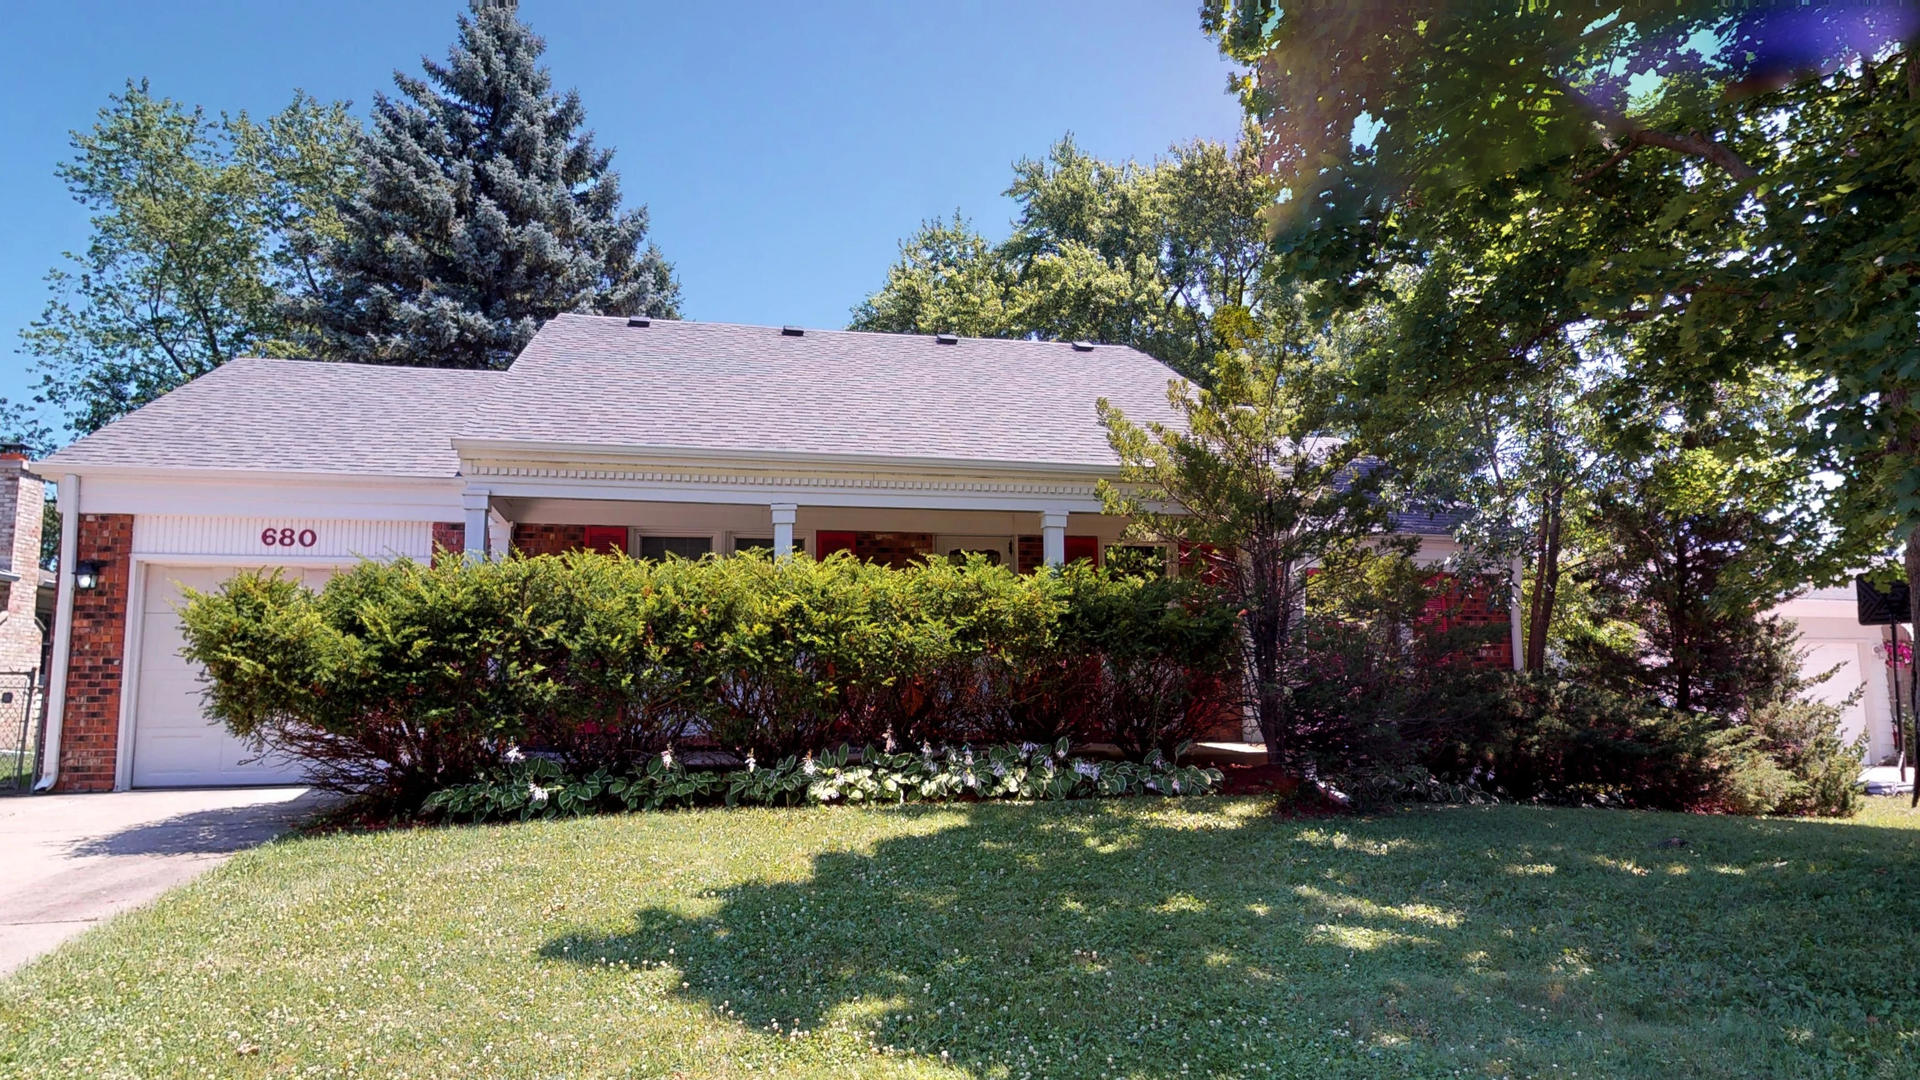 680 Indian Spring Lane, Buffalo Grove in Lake County, IL 60089 Home for Sale